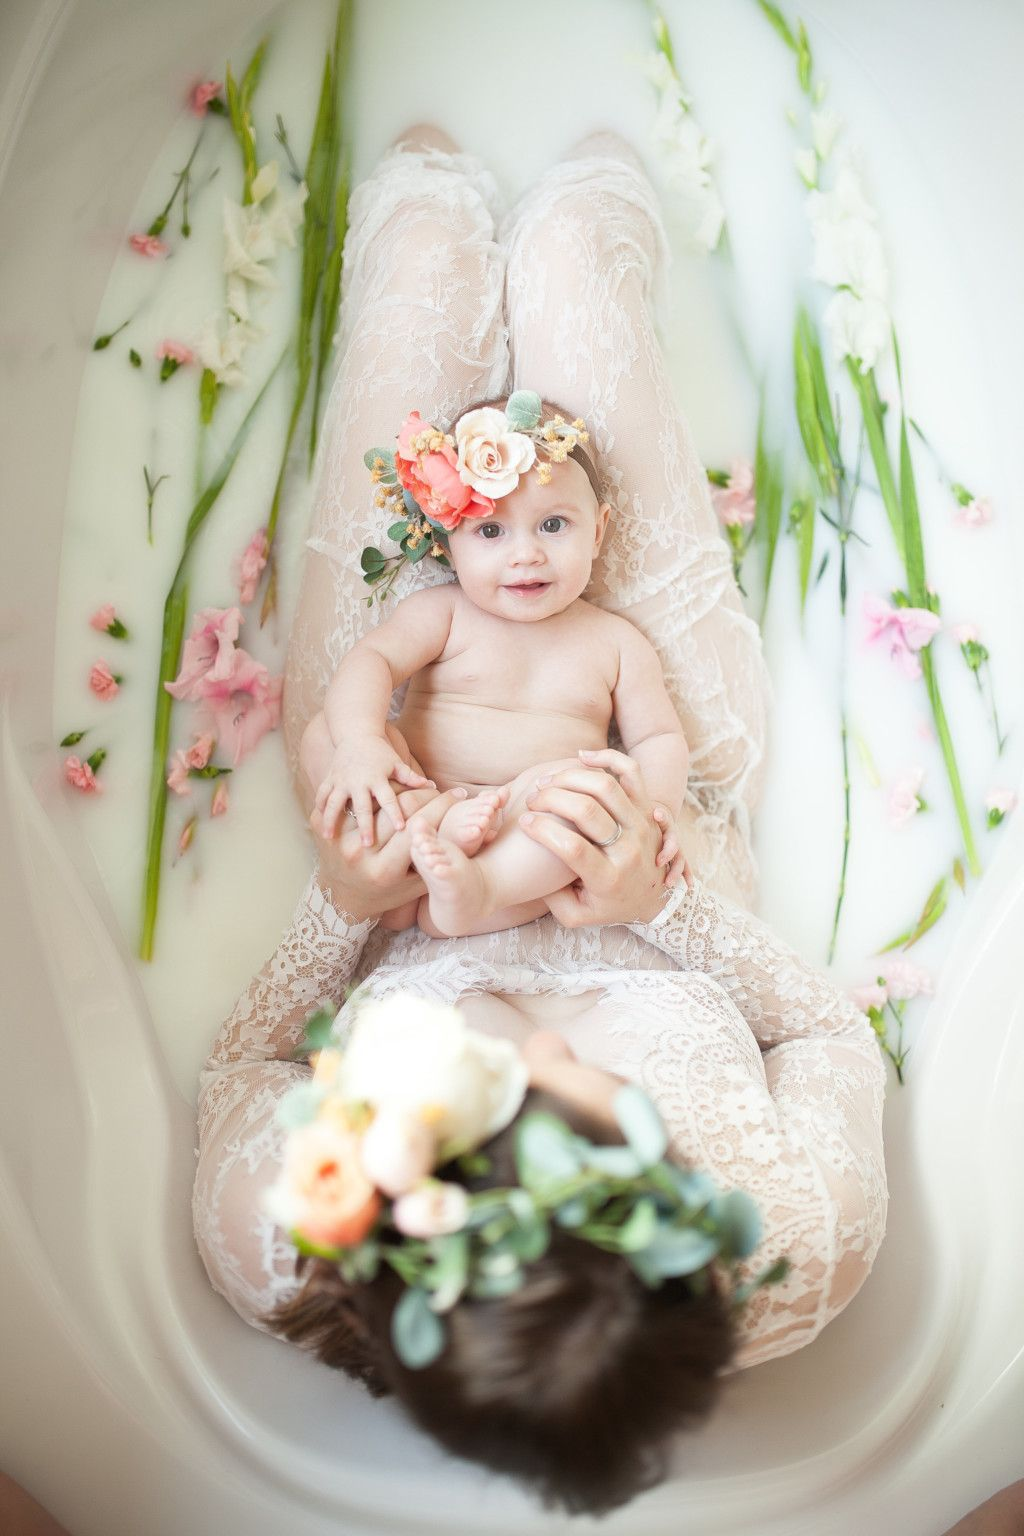 Milk Bath Photography Is the Dreamiest Maternity Shoot Trend On Pinterest recommendations